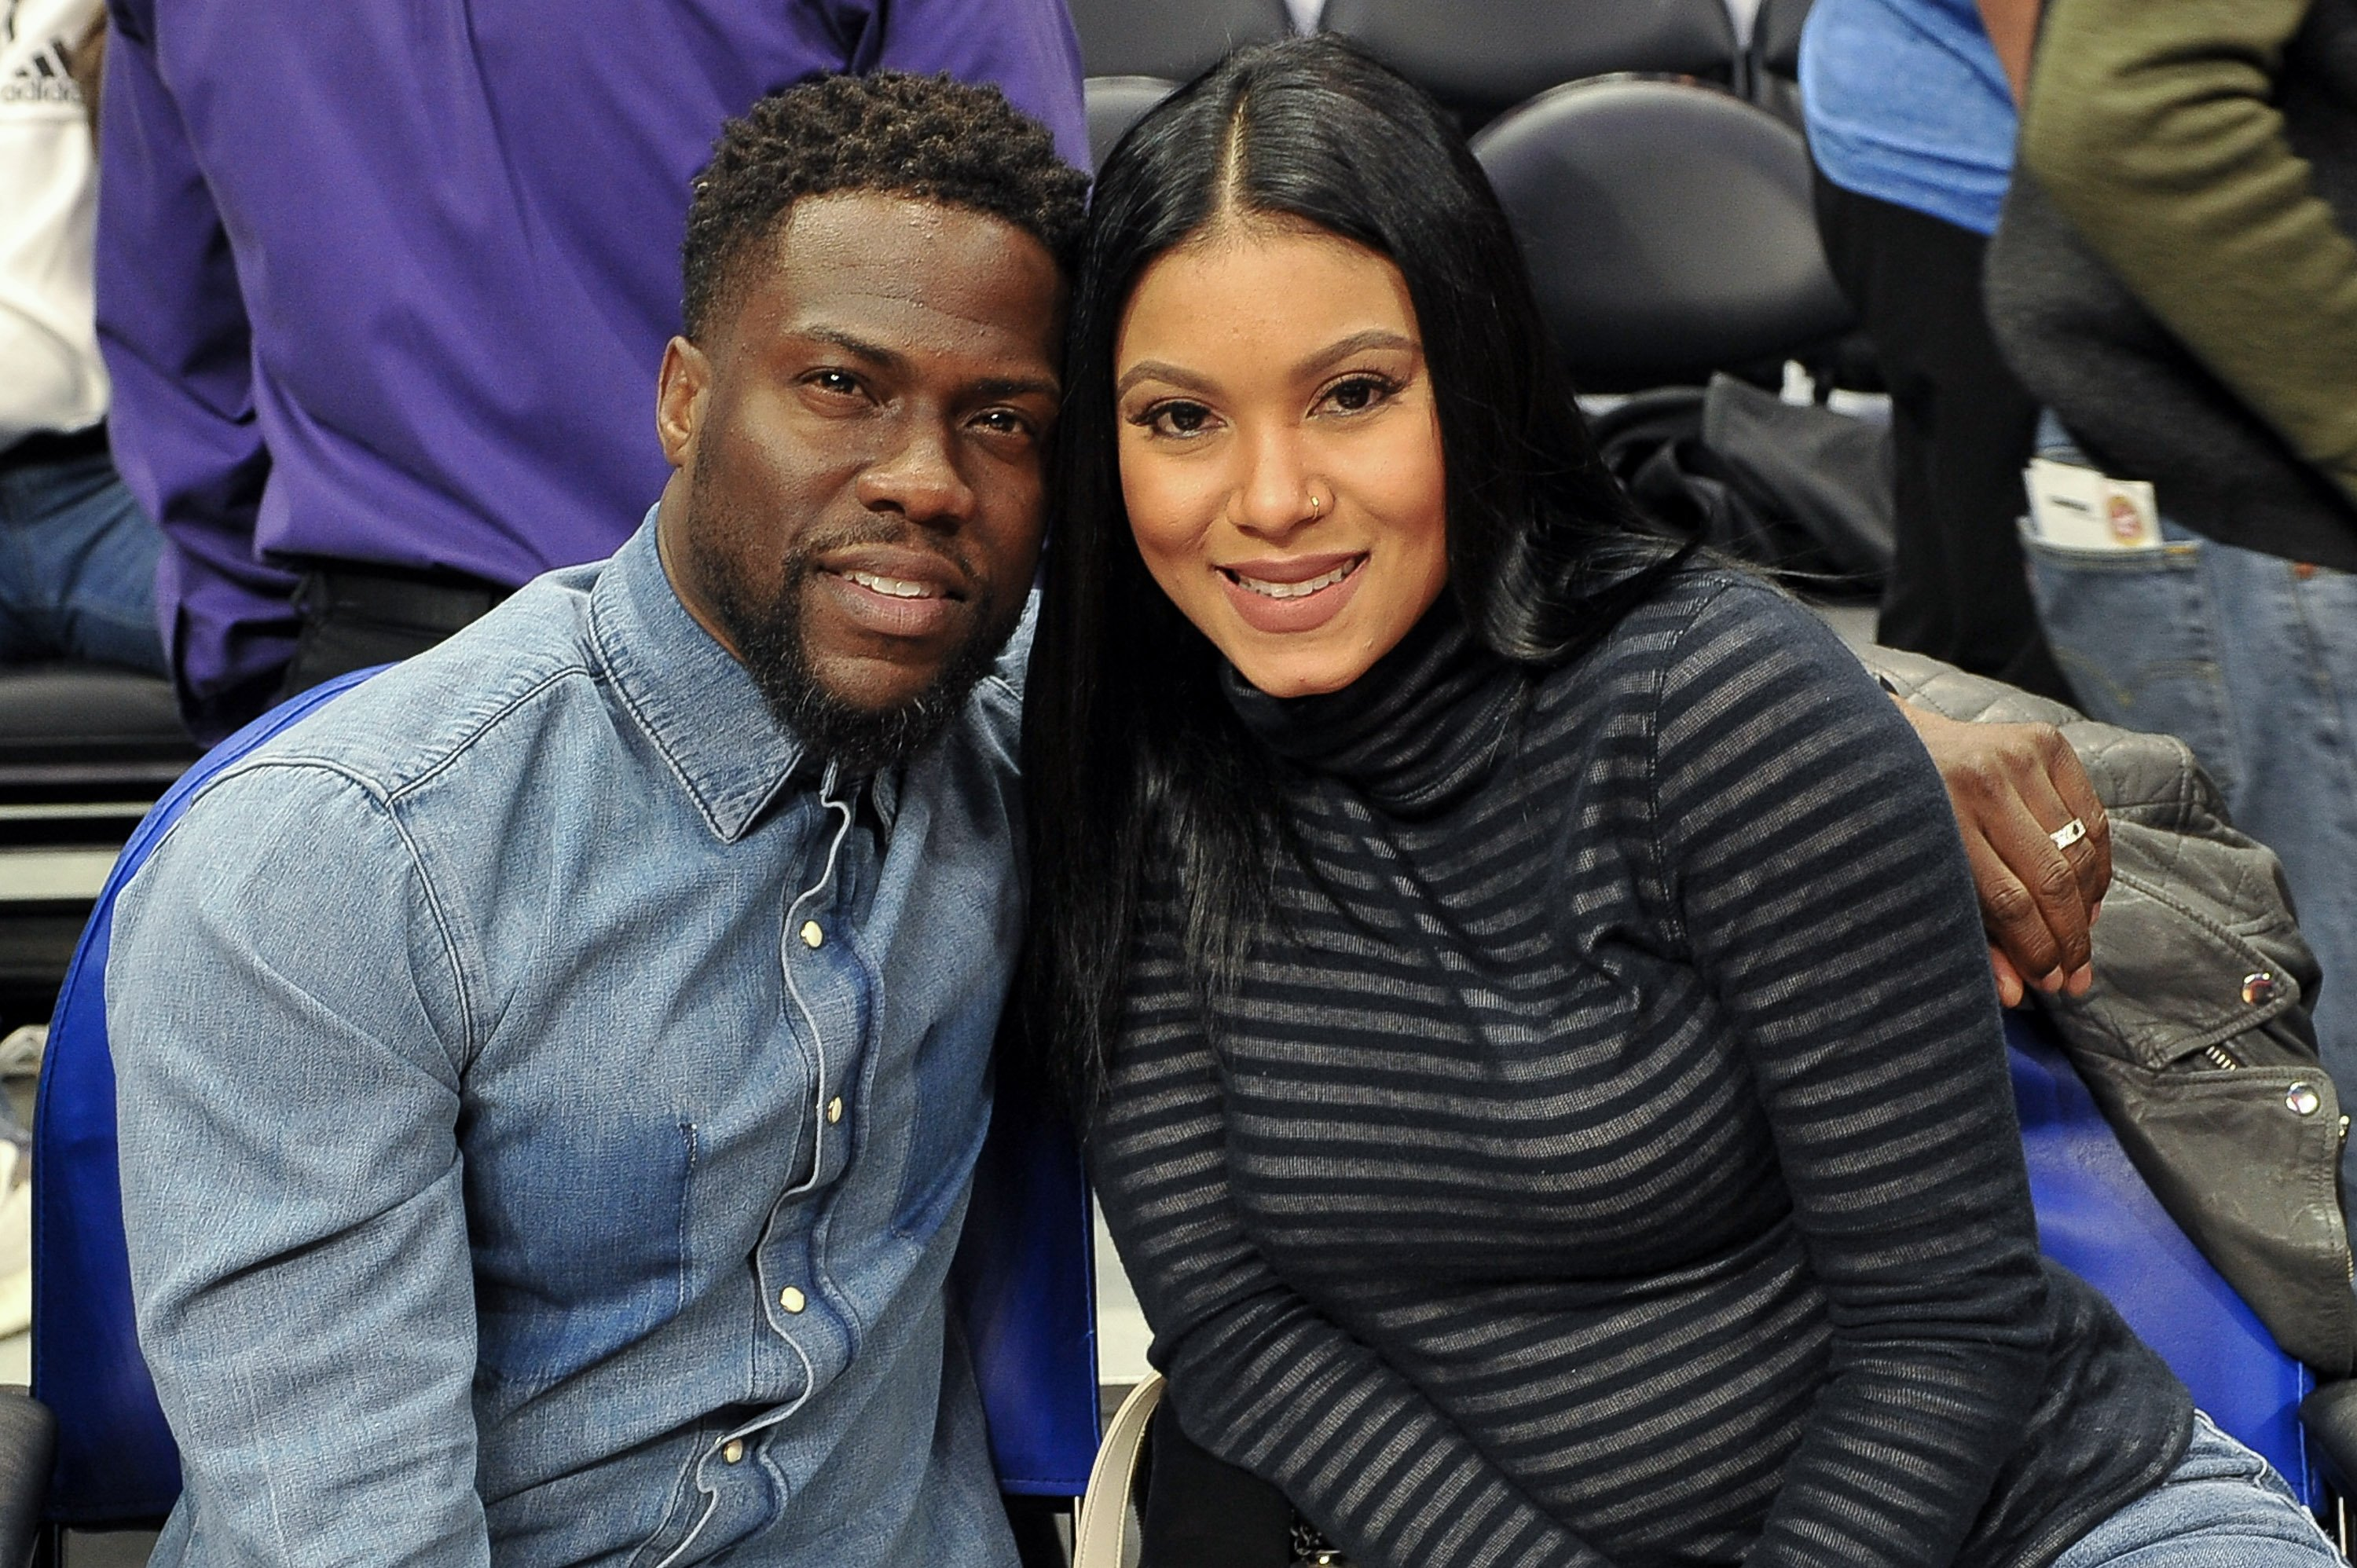 Kevin and Eniko Hart at a basketball game at Staples Center on January 22, 2018 in Los Angeles, California | Photo: Getty Images